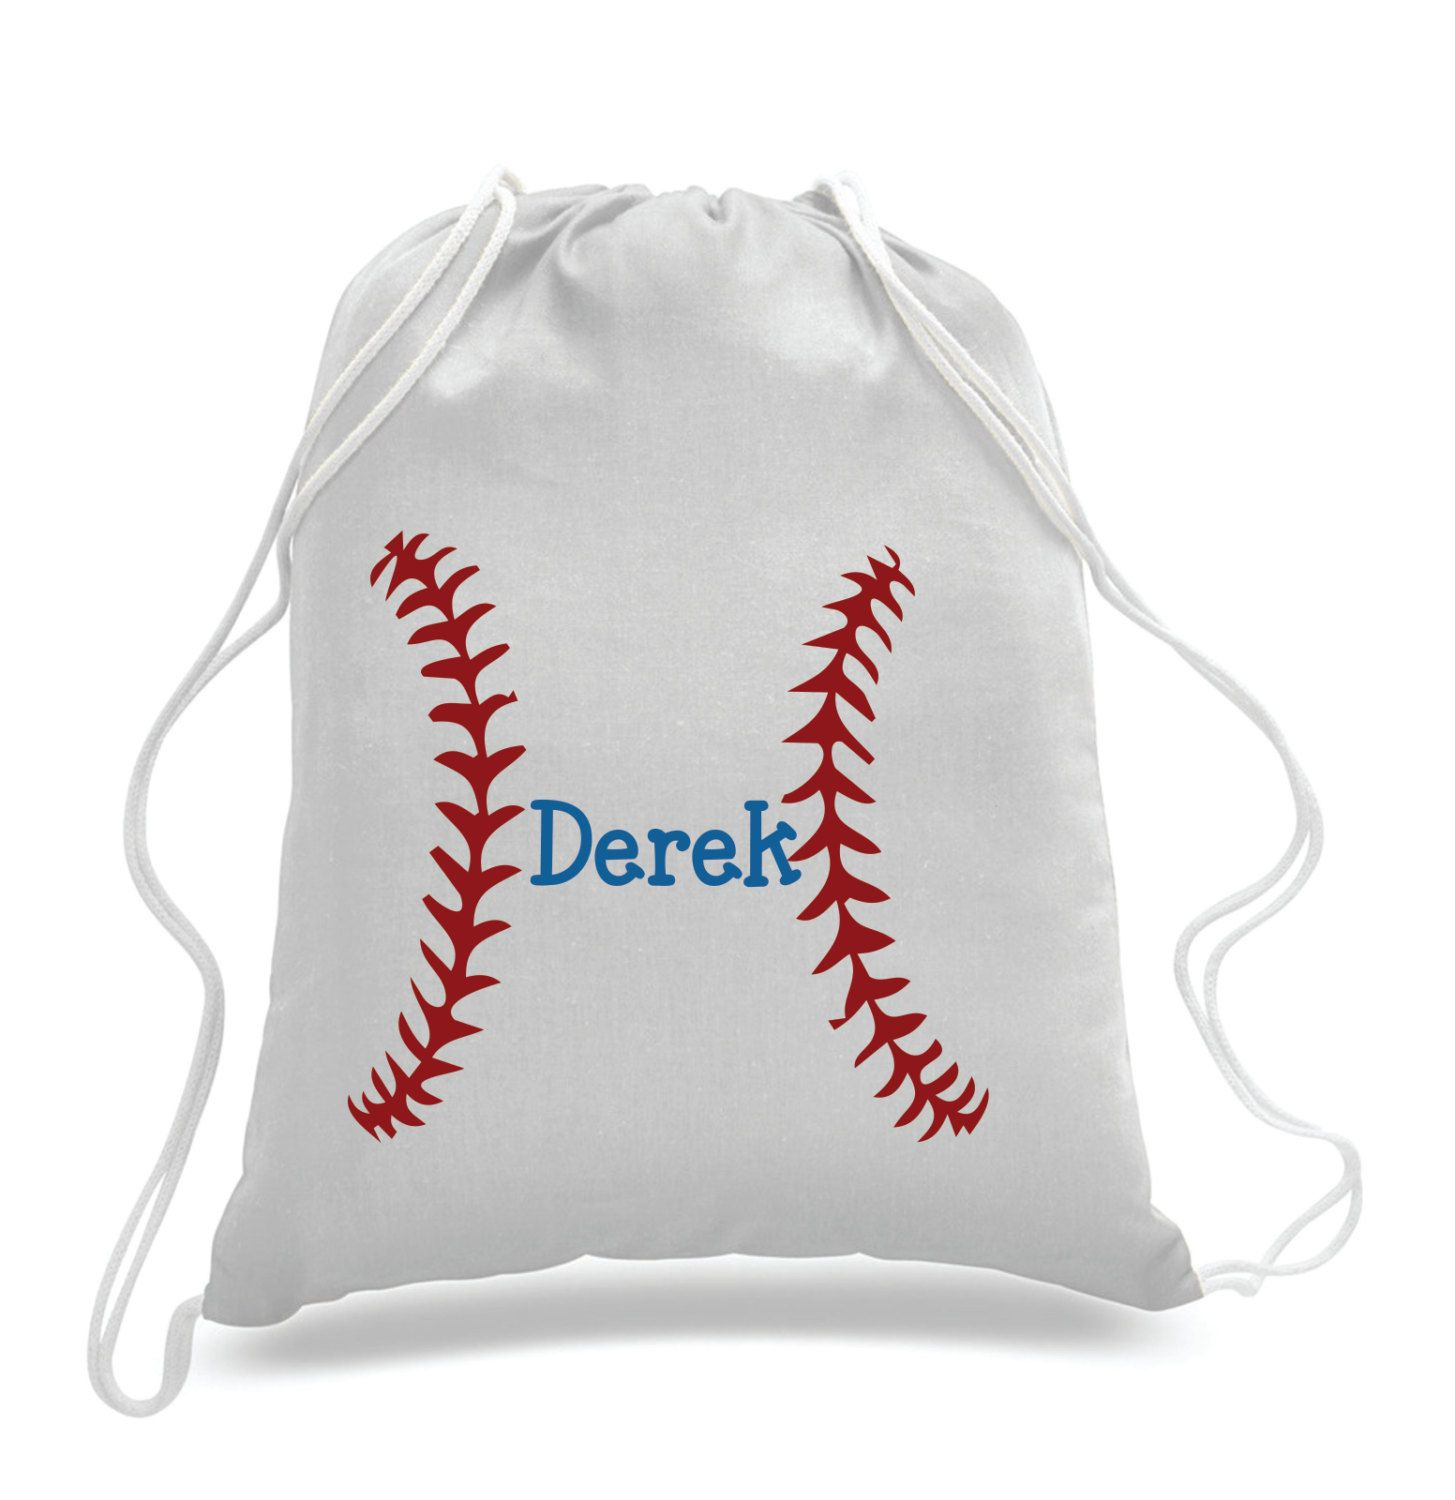 Personalized Baseball Design Kids Drawstring Bags Gym Bags Backpacks Swimbag Sports Bag By 5monkeysdesigns On Etsy Beisbol Party Accesorios